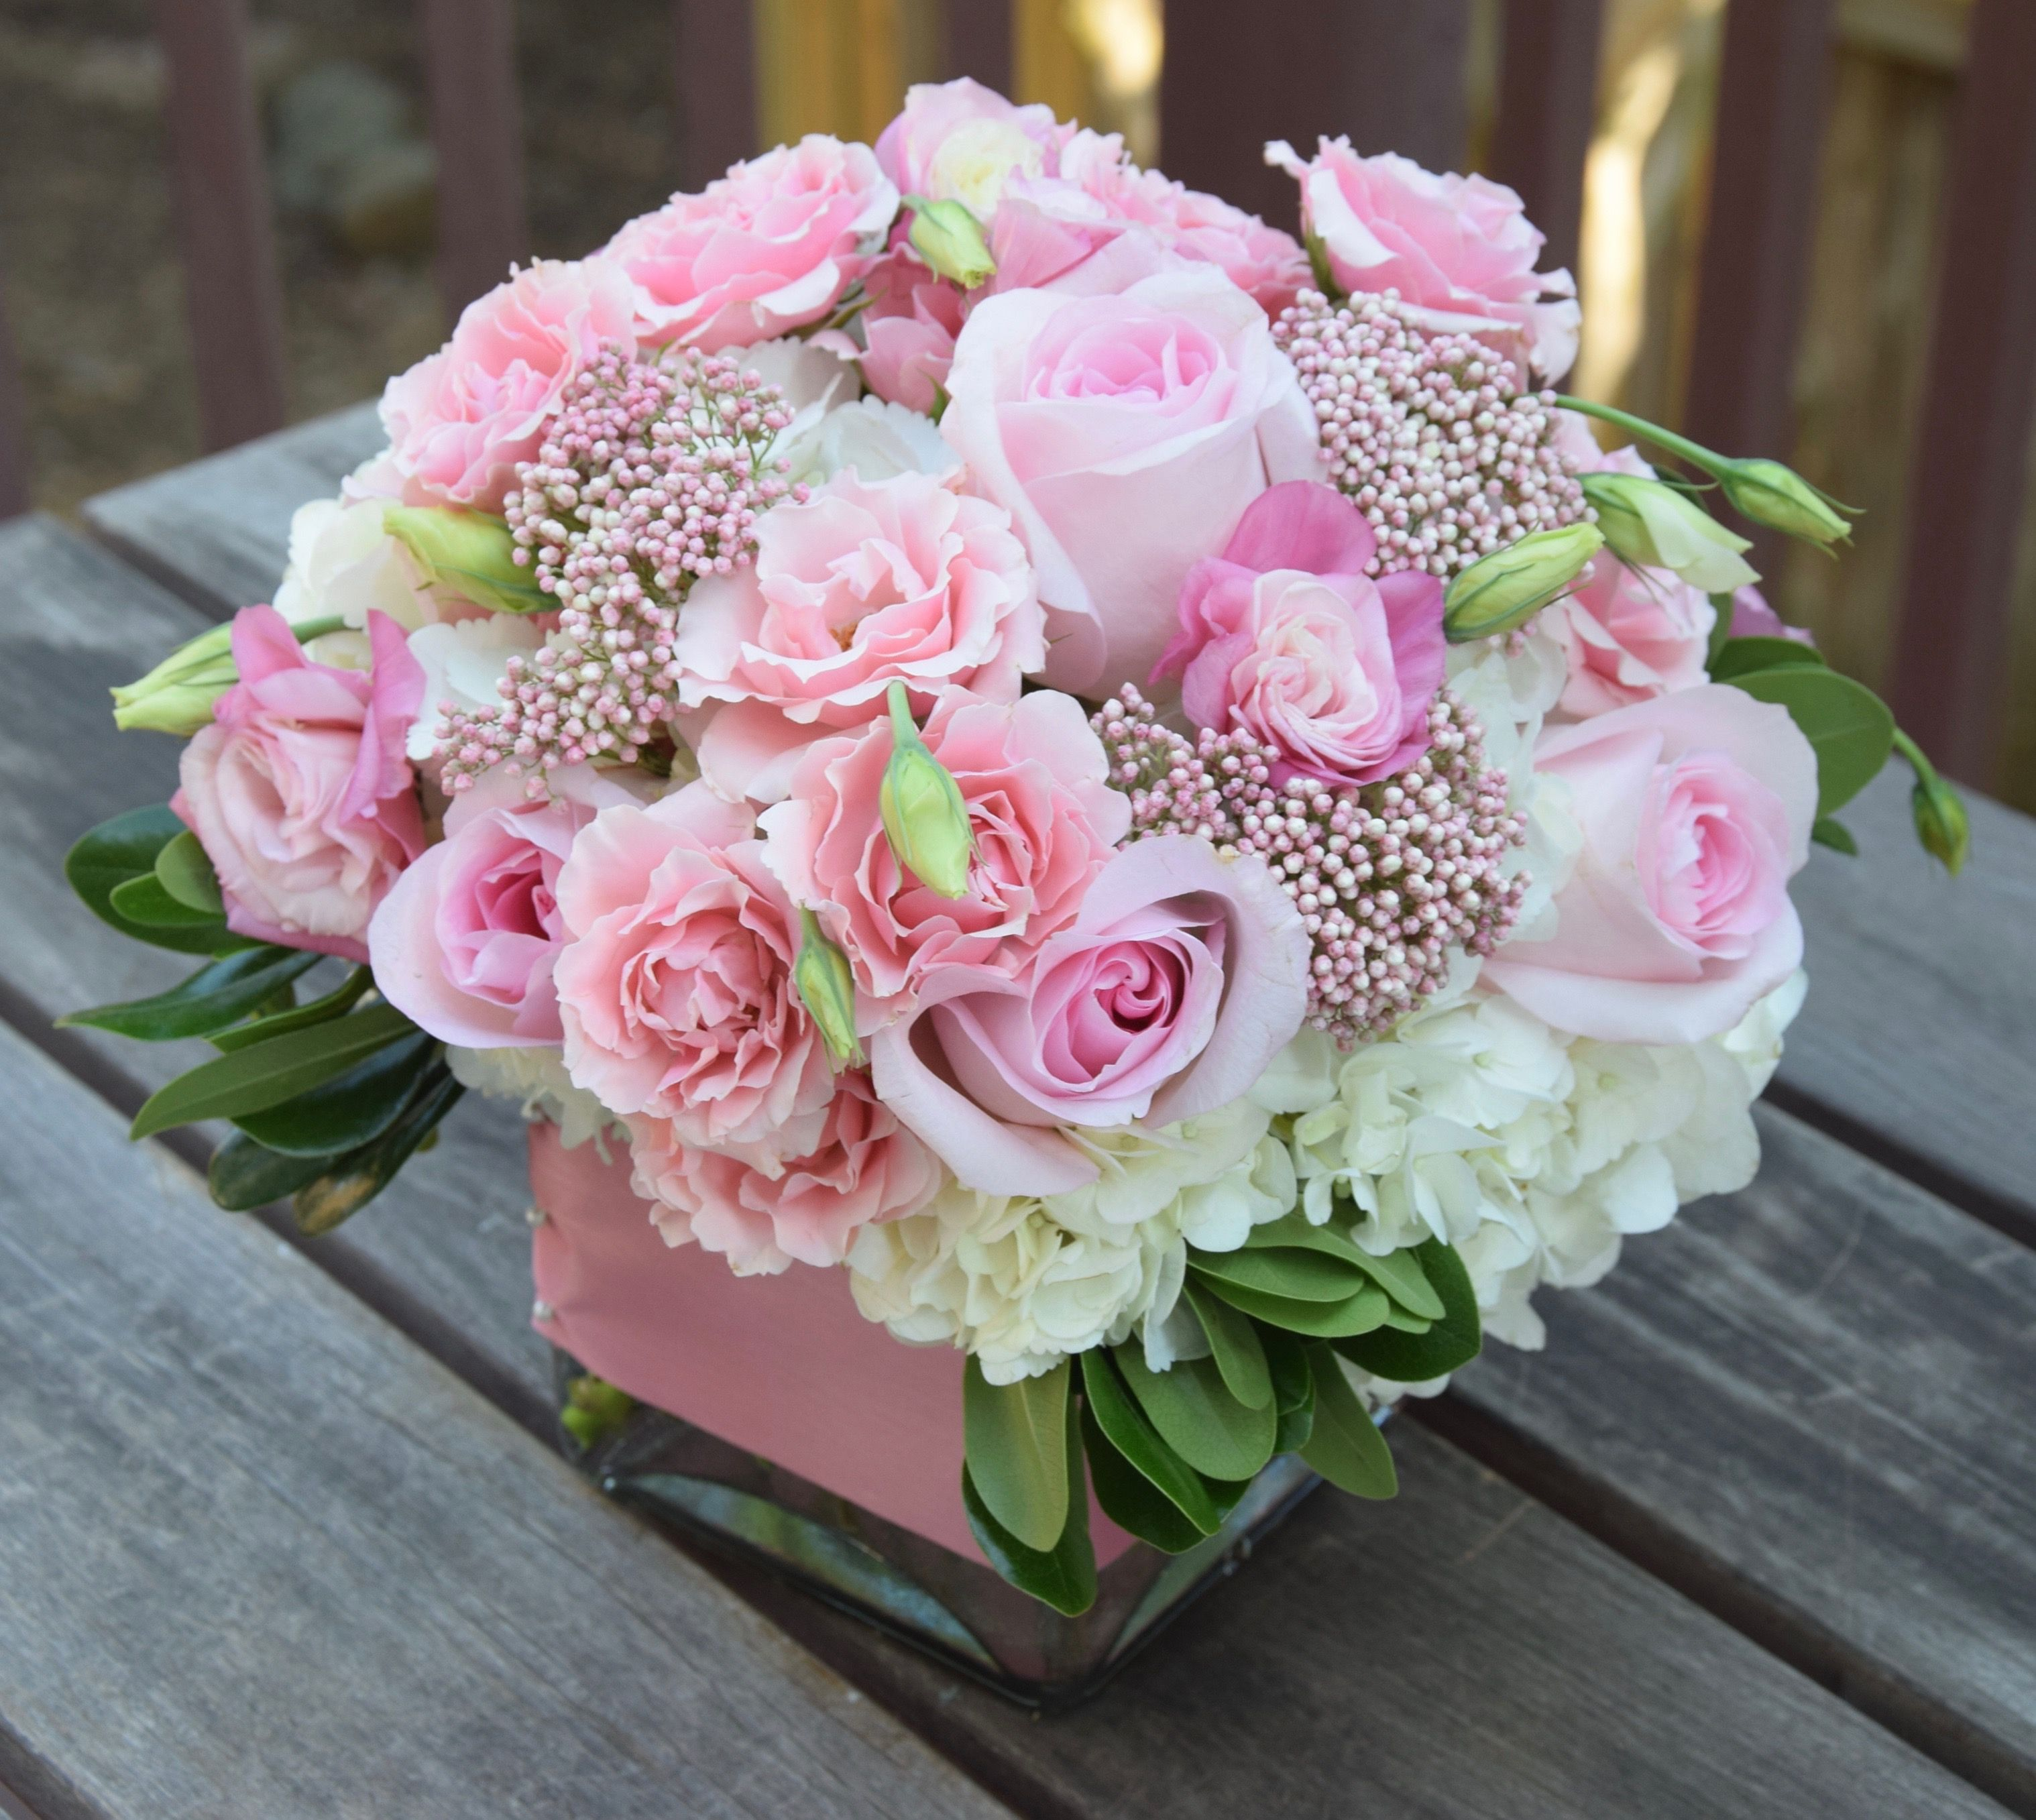 Sweet Pink Flower Arrangement With Spray Rose Roses Hydrangeas Lisianthus And Rice Flower Pink Flower Arrangements Flower Arrangements Pink Flowers